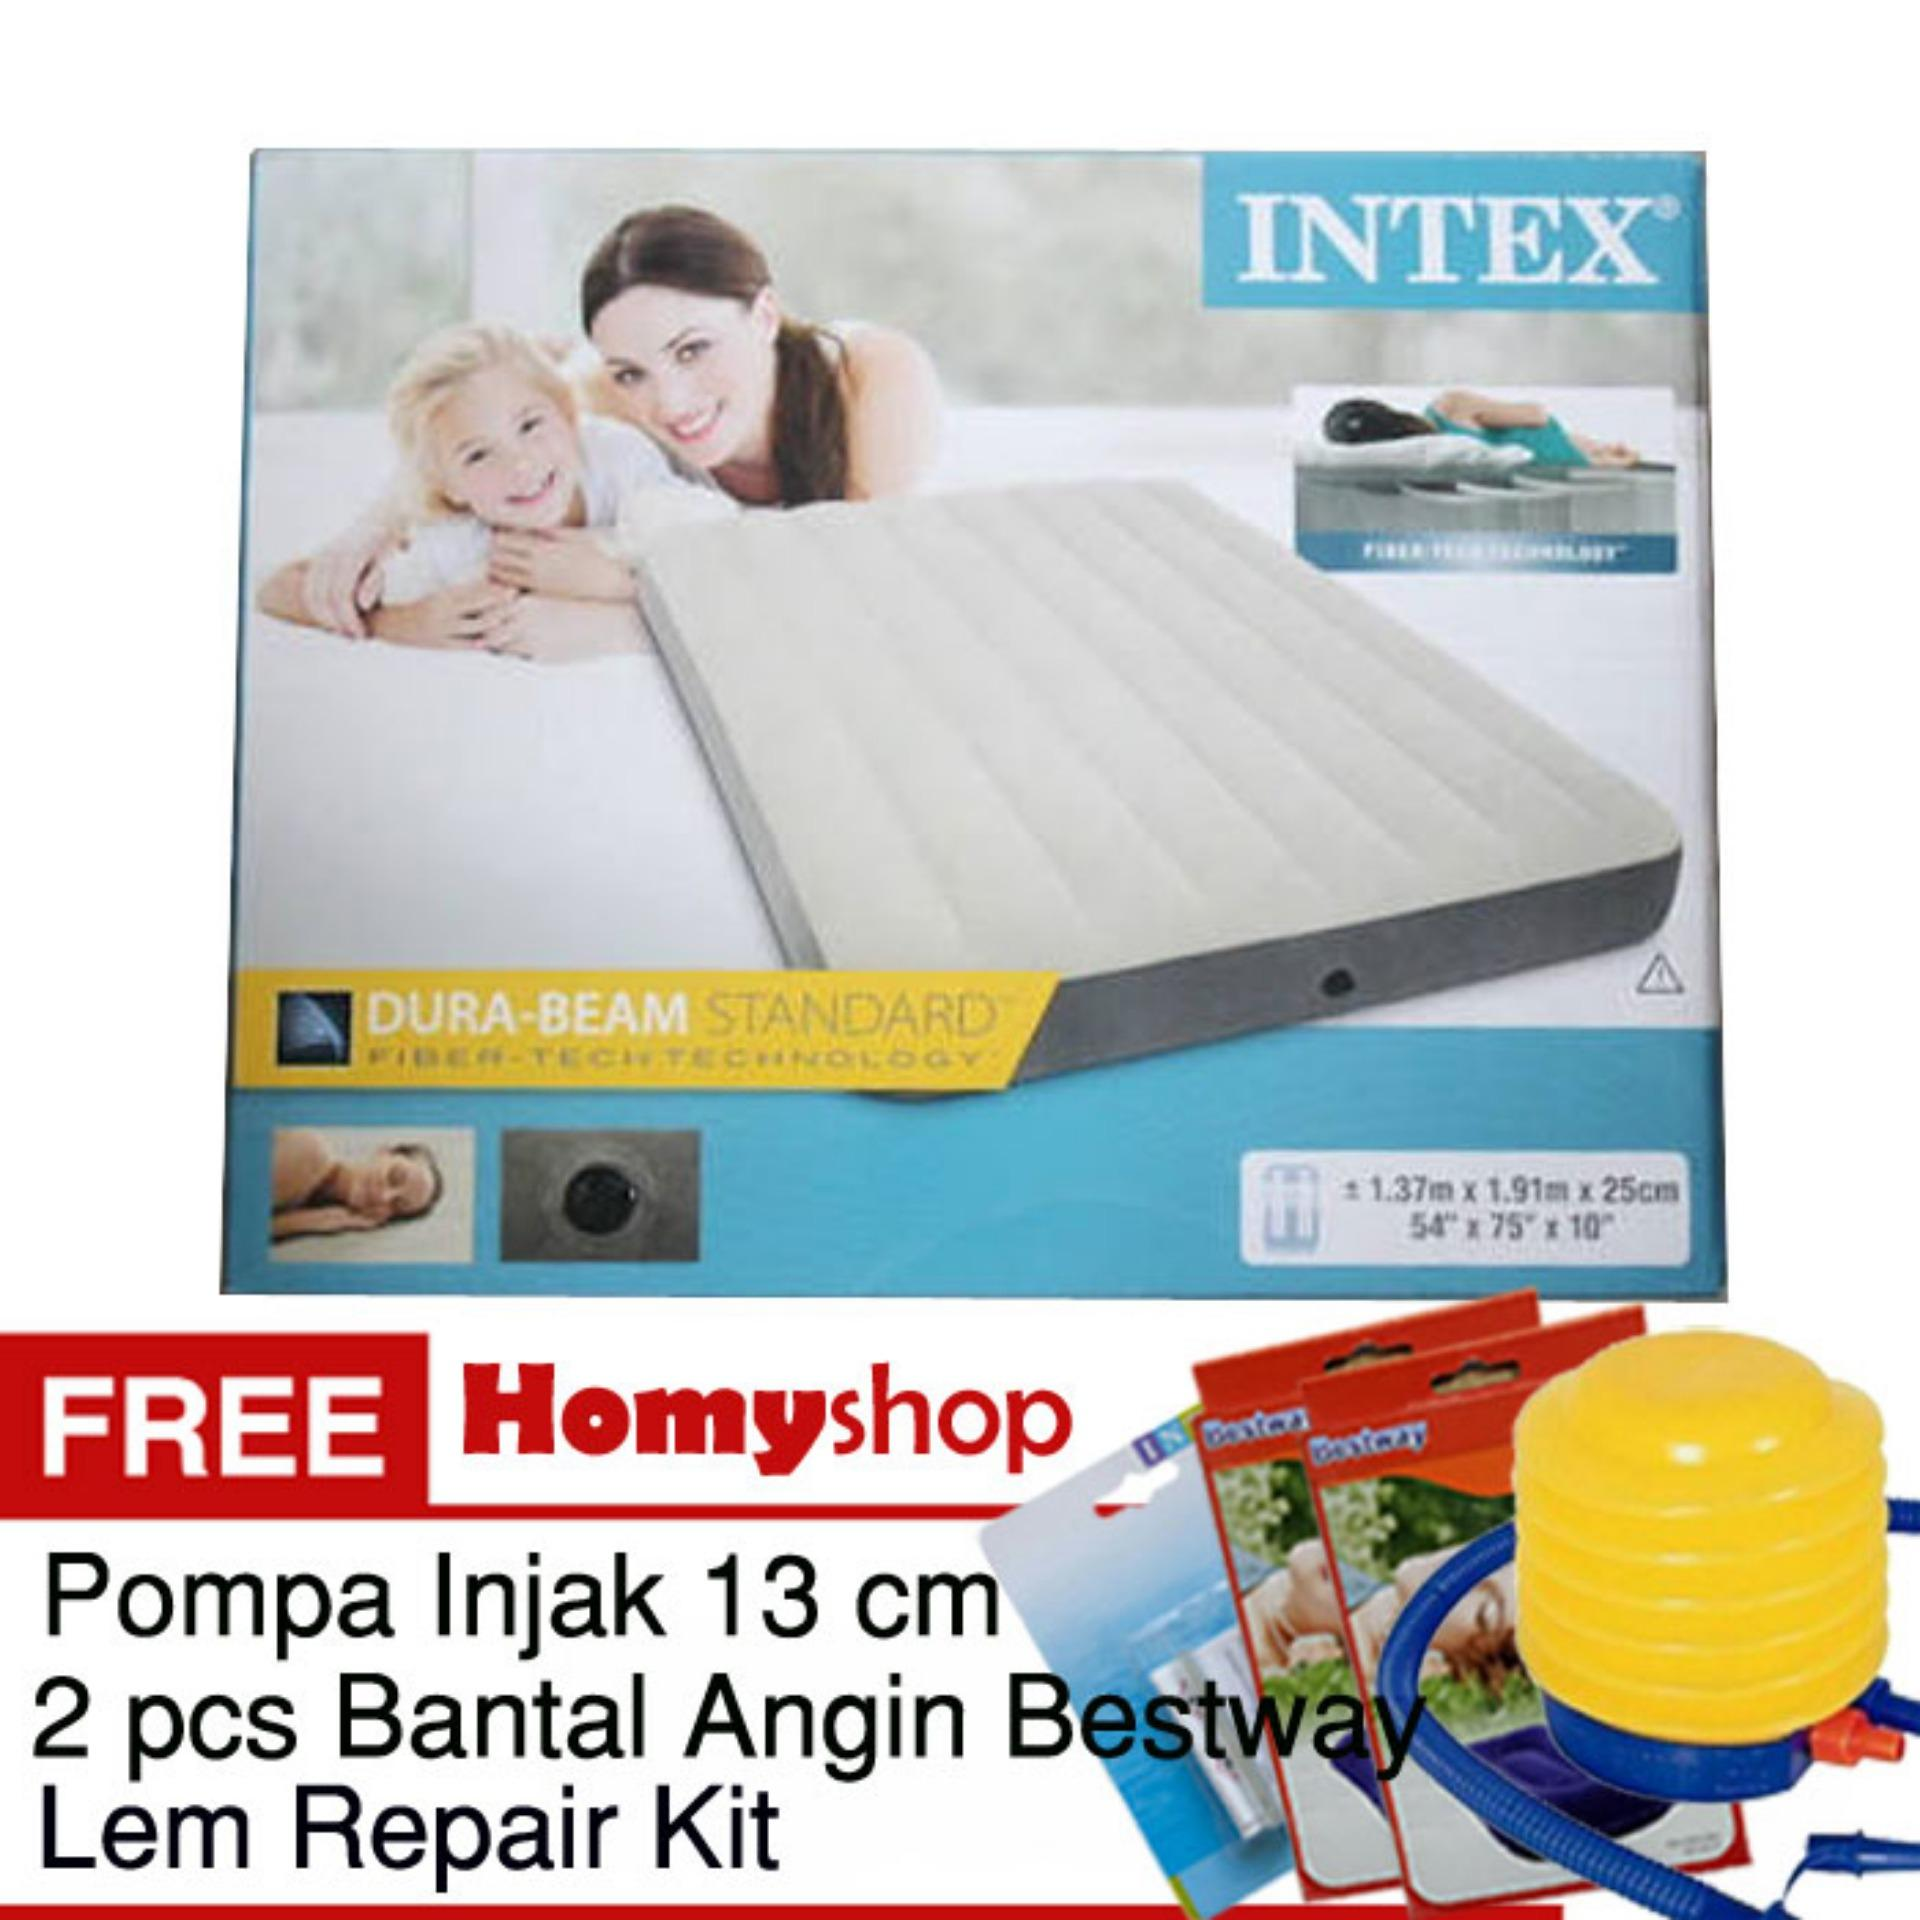 INTEX DuraBeam Double 64708 Kasur Angin / Kasur Udara [137x191x25 cm] Free Pompa Injak Bestway+2 pcs Bantal Kepala Bestway+Lem Repair Kit